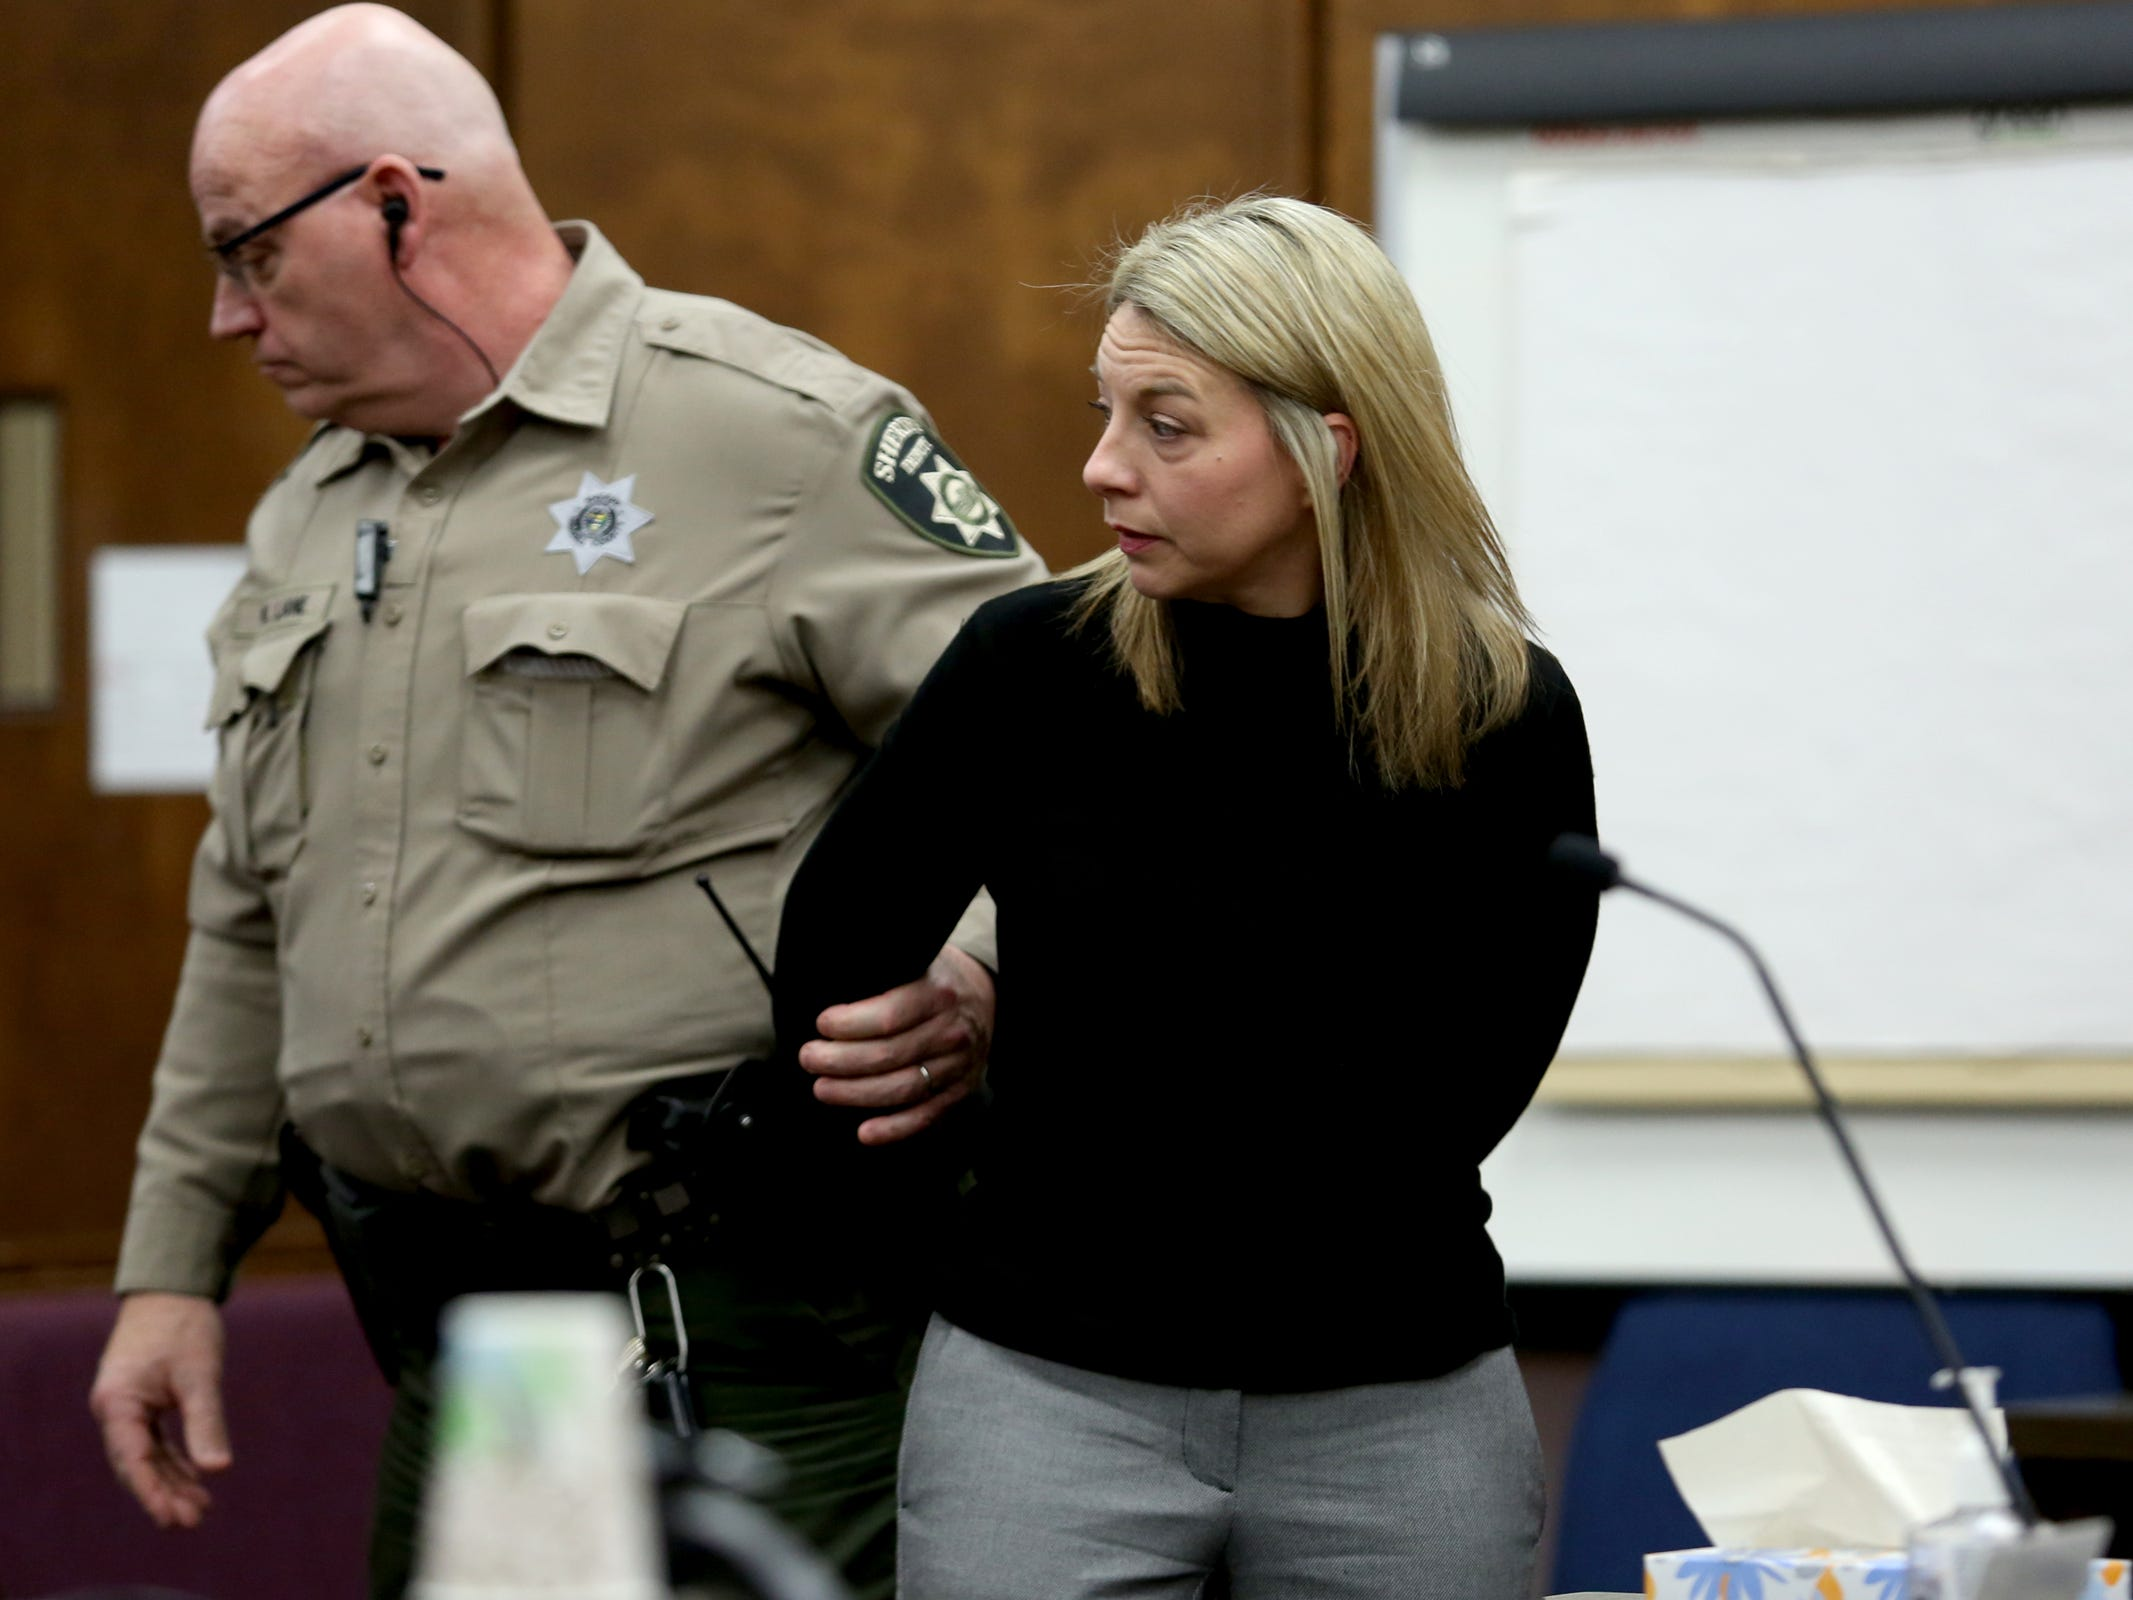 Jennifer Weathers is taken away in handcuffs by a Sheriff's deputy after entering a guilty plea for driving under the influence on the night of her daughter's death in 2018 at the Yamhill County Courthouse in McMinnville on Tuesday, Feb. 5, 2019. Meighan Cordie died from blunt force trauma after jumping or falling out of the car her mother was driving while her 3-year-old daughter was also in the vehicle.